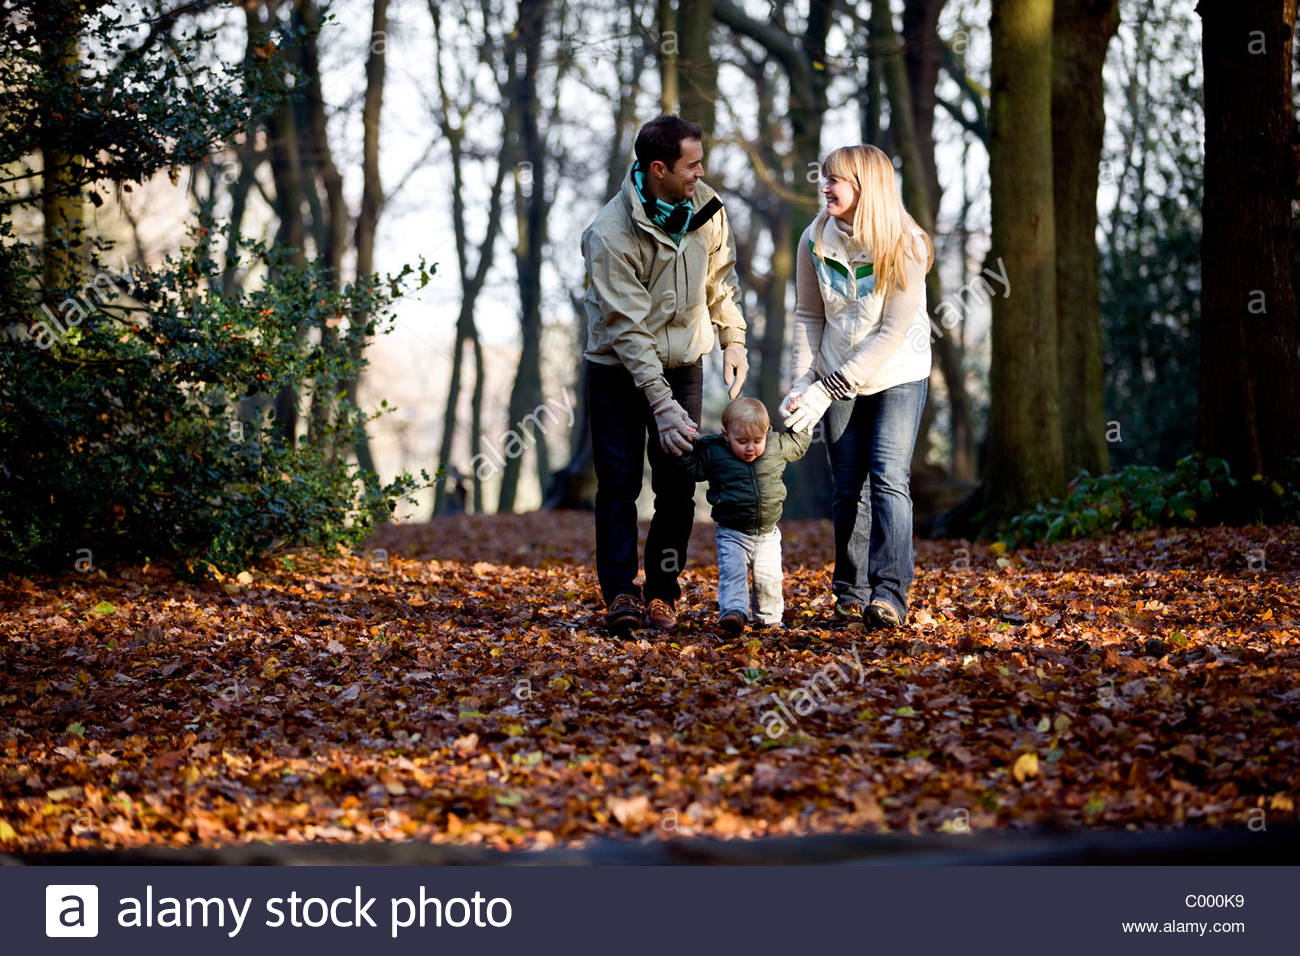 A young couple walking with their son in the park - Stock Image